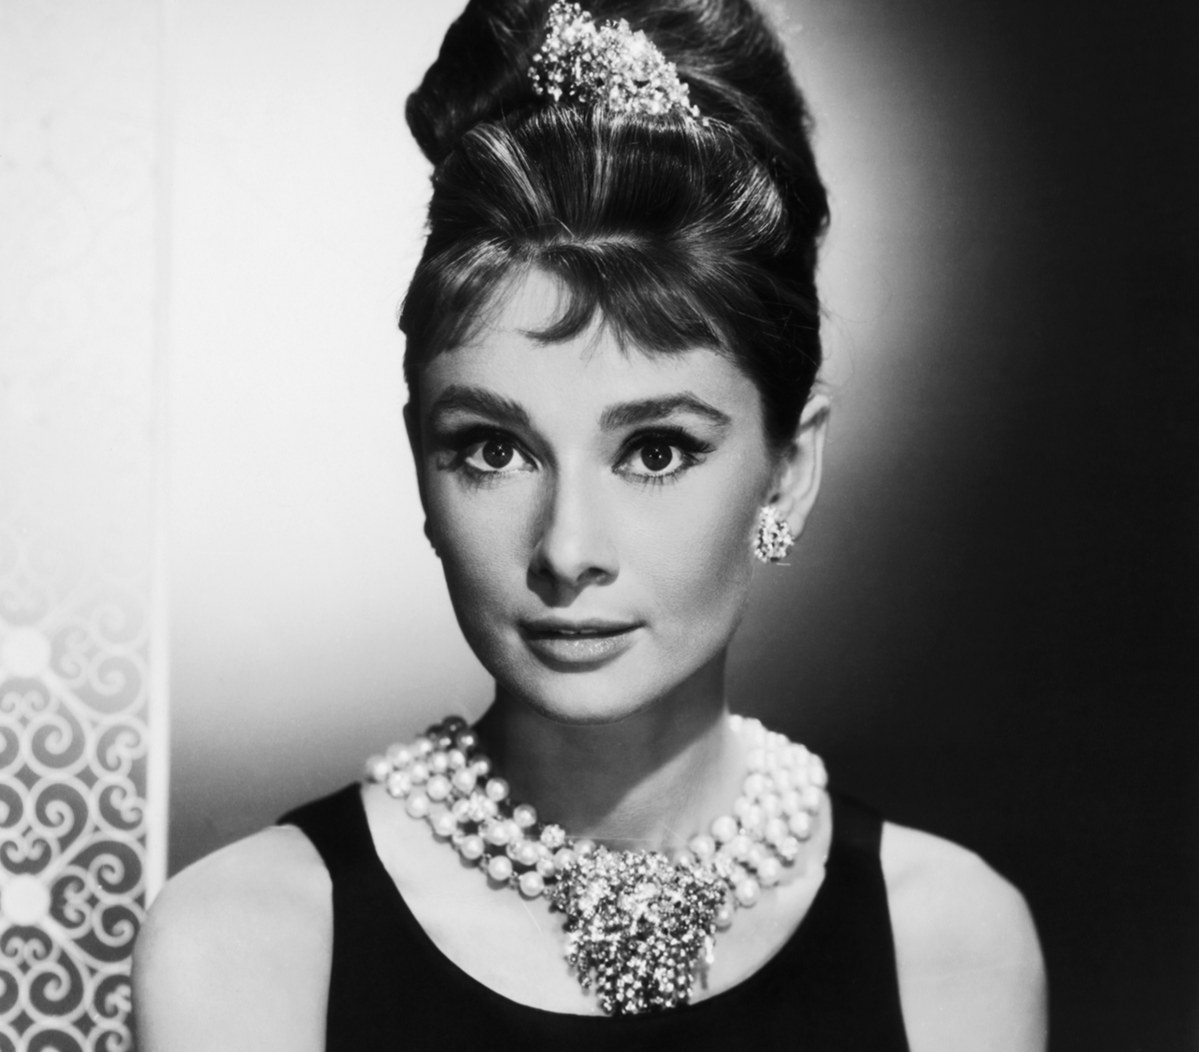 Audrey Hepburn as Holly Golightly in Breakfast at Tiffany's, 1961.